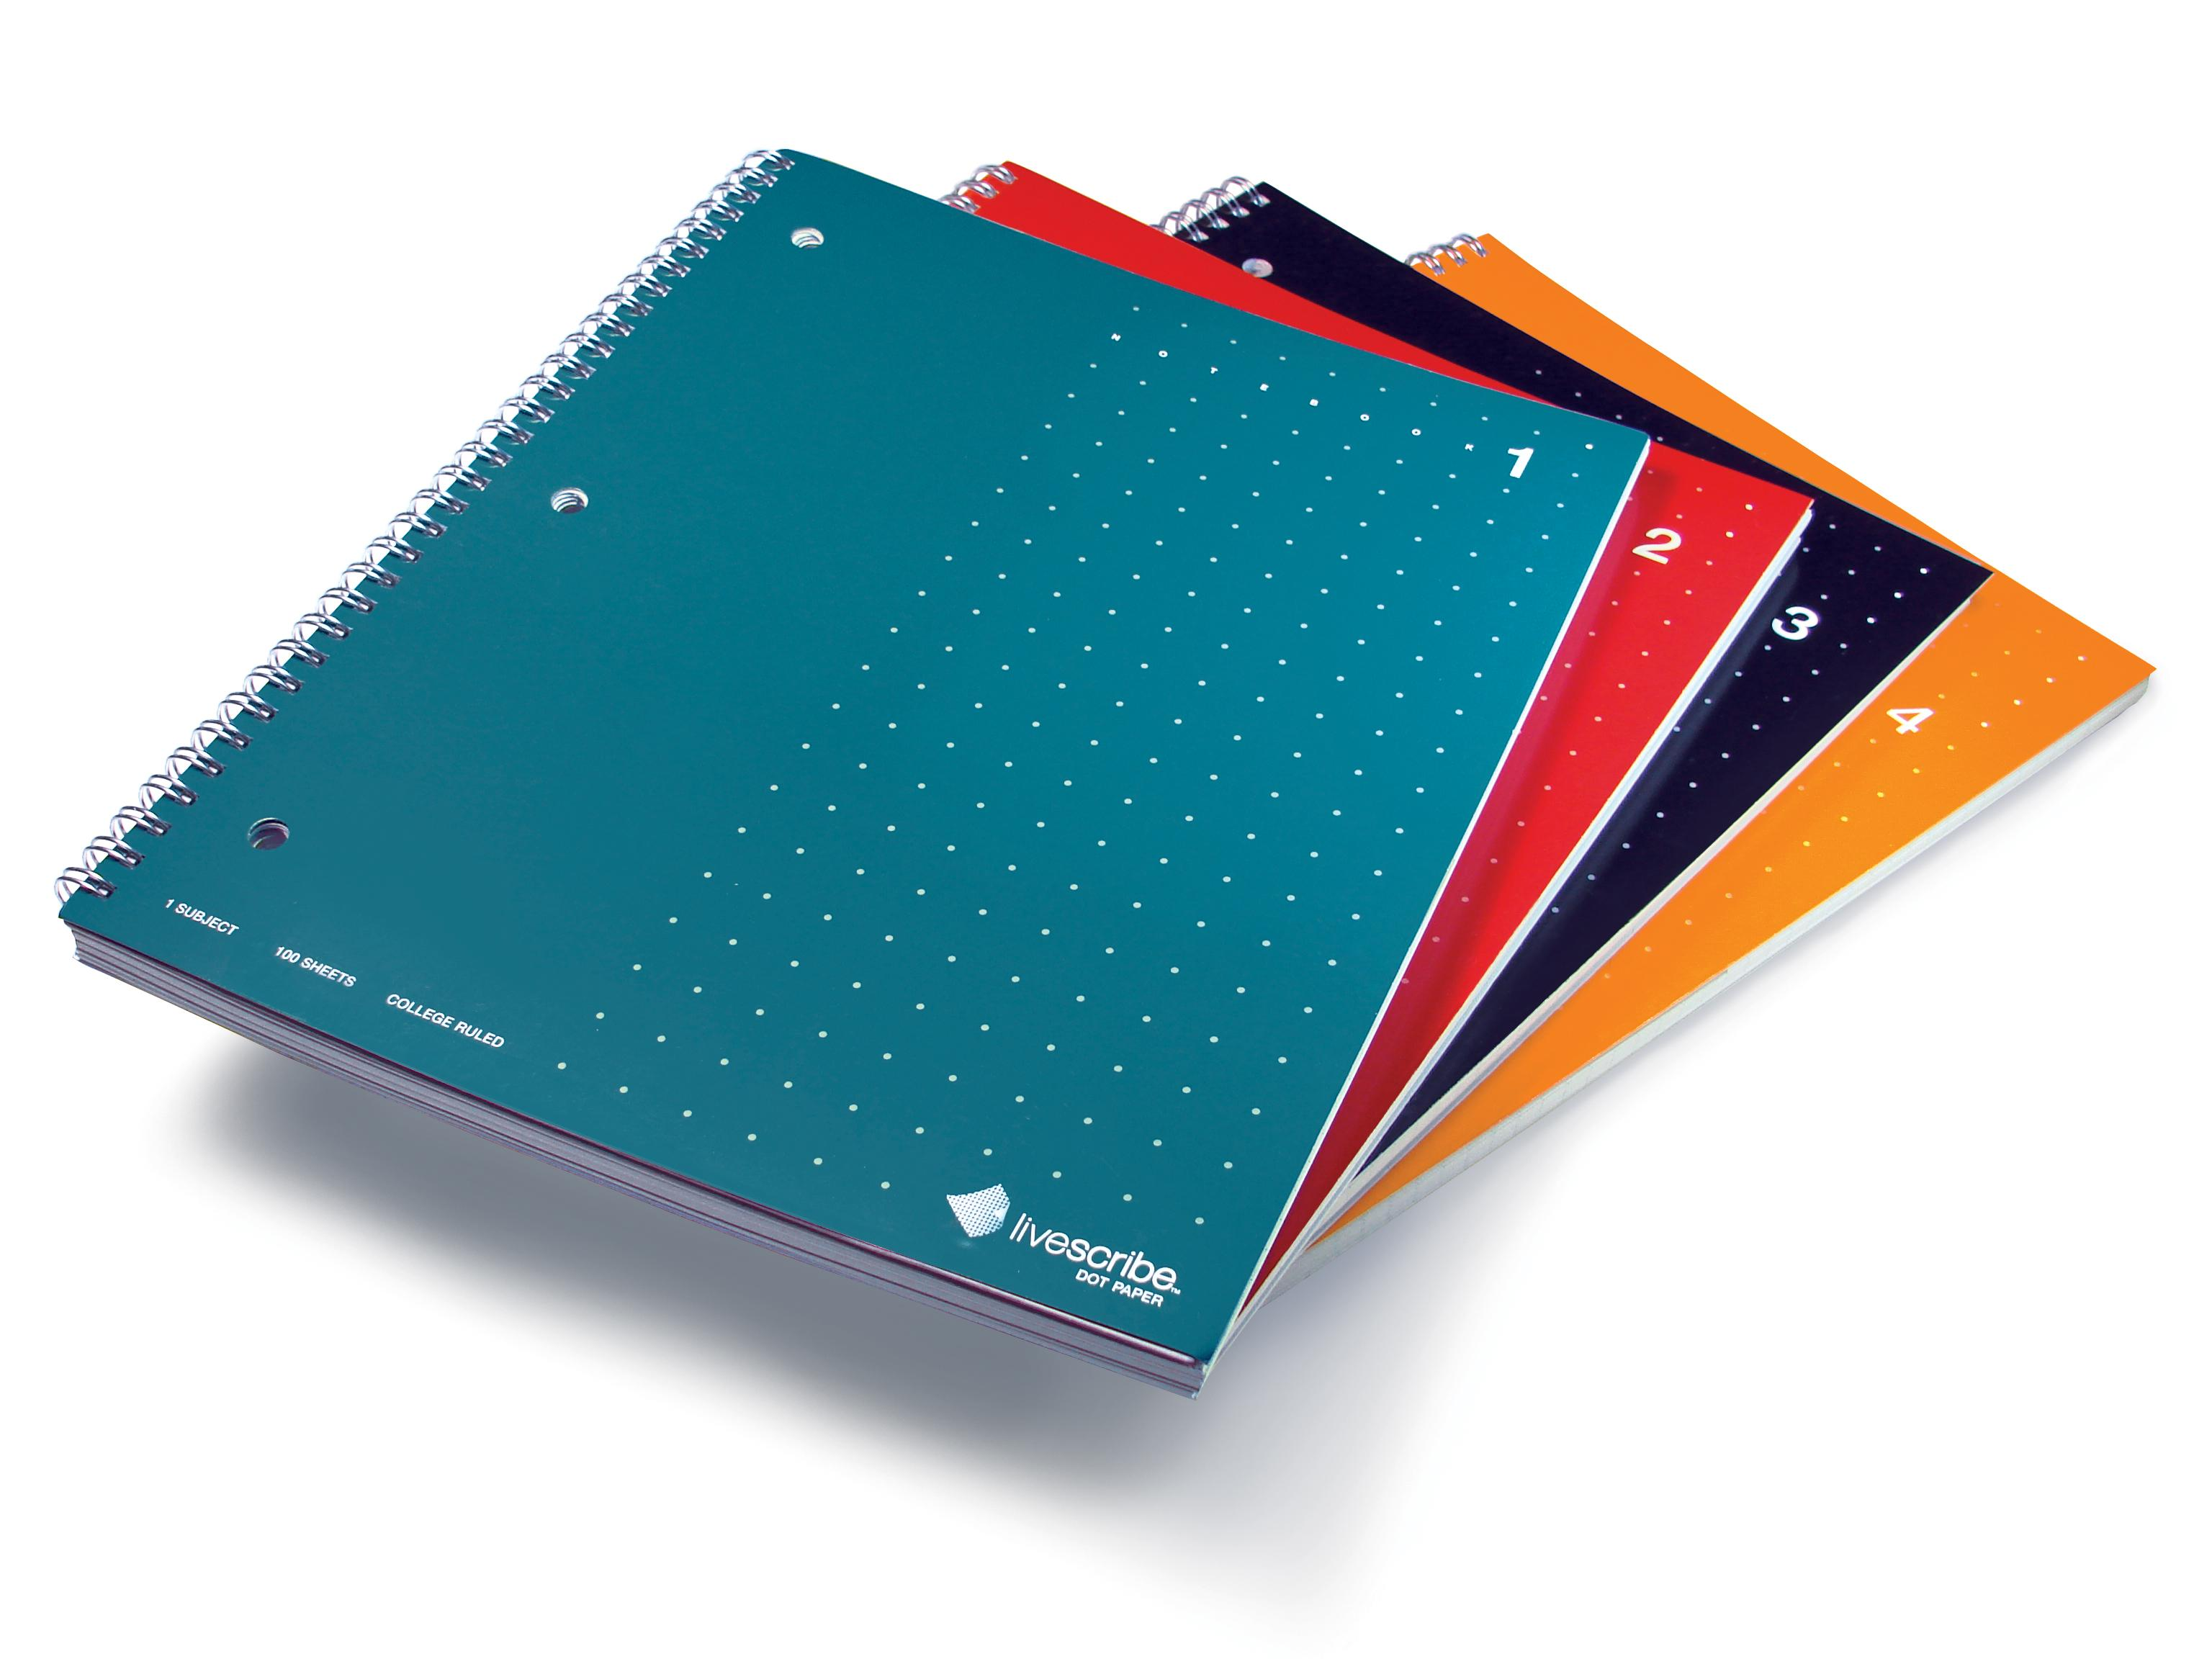 Amazon.com : Livescribe 8.5 x 11 Single Subject Notebook #1-4 (4-pack